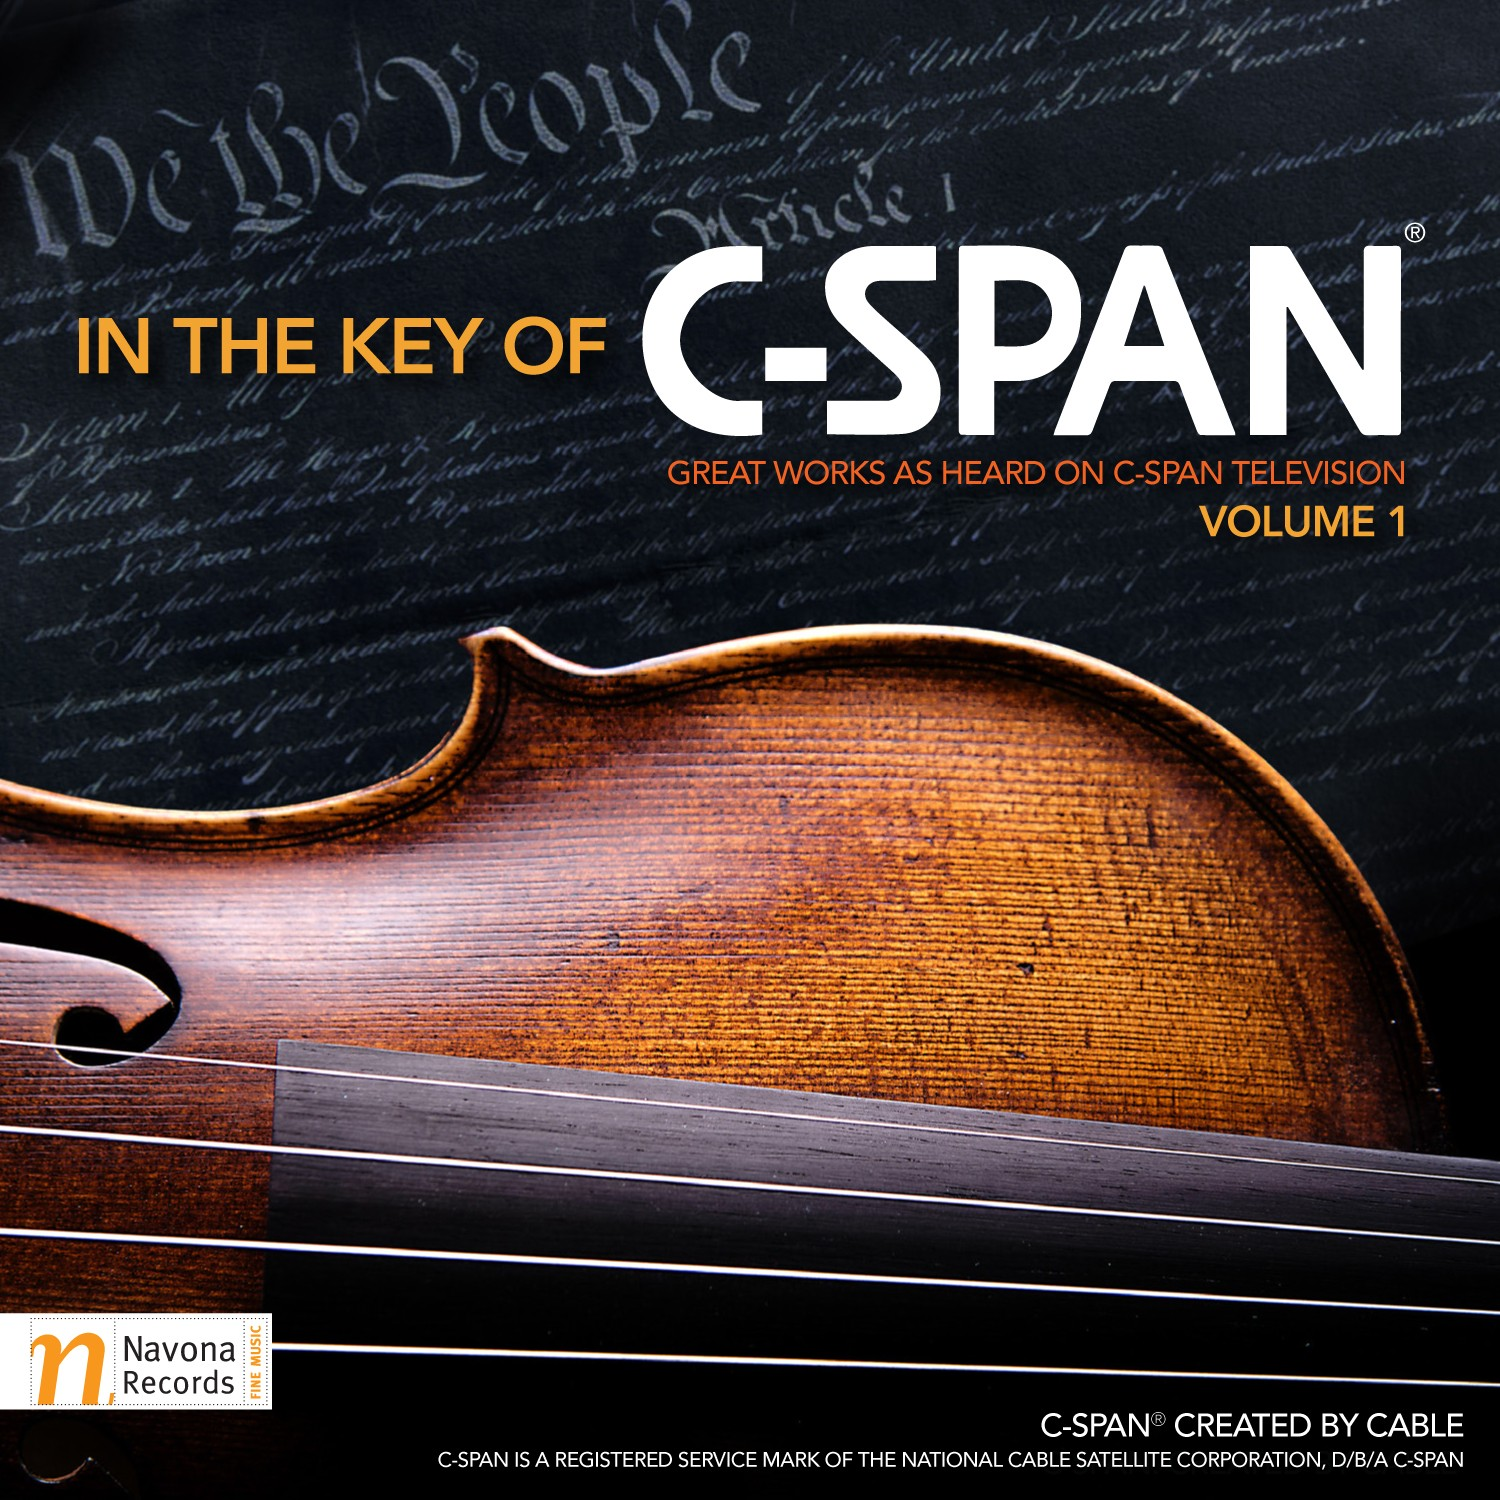 In the Key of C-SPAN